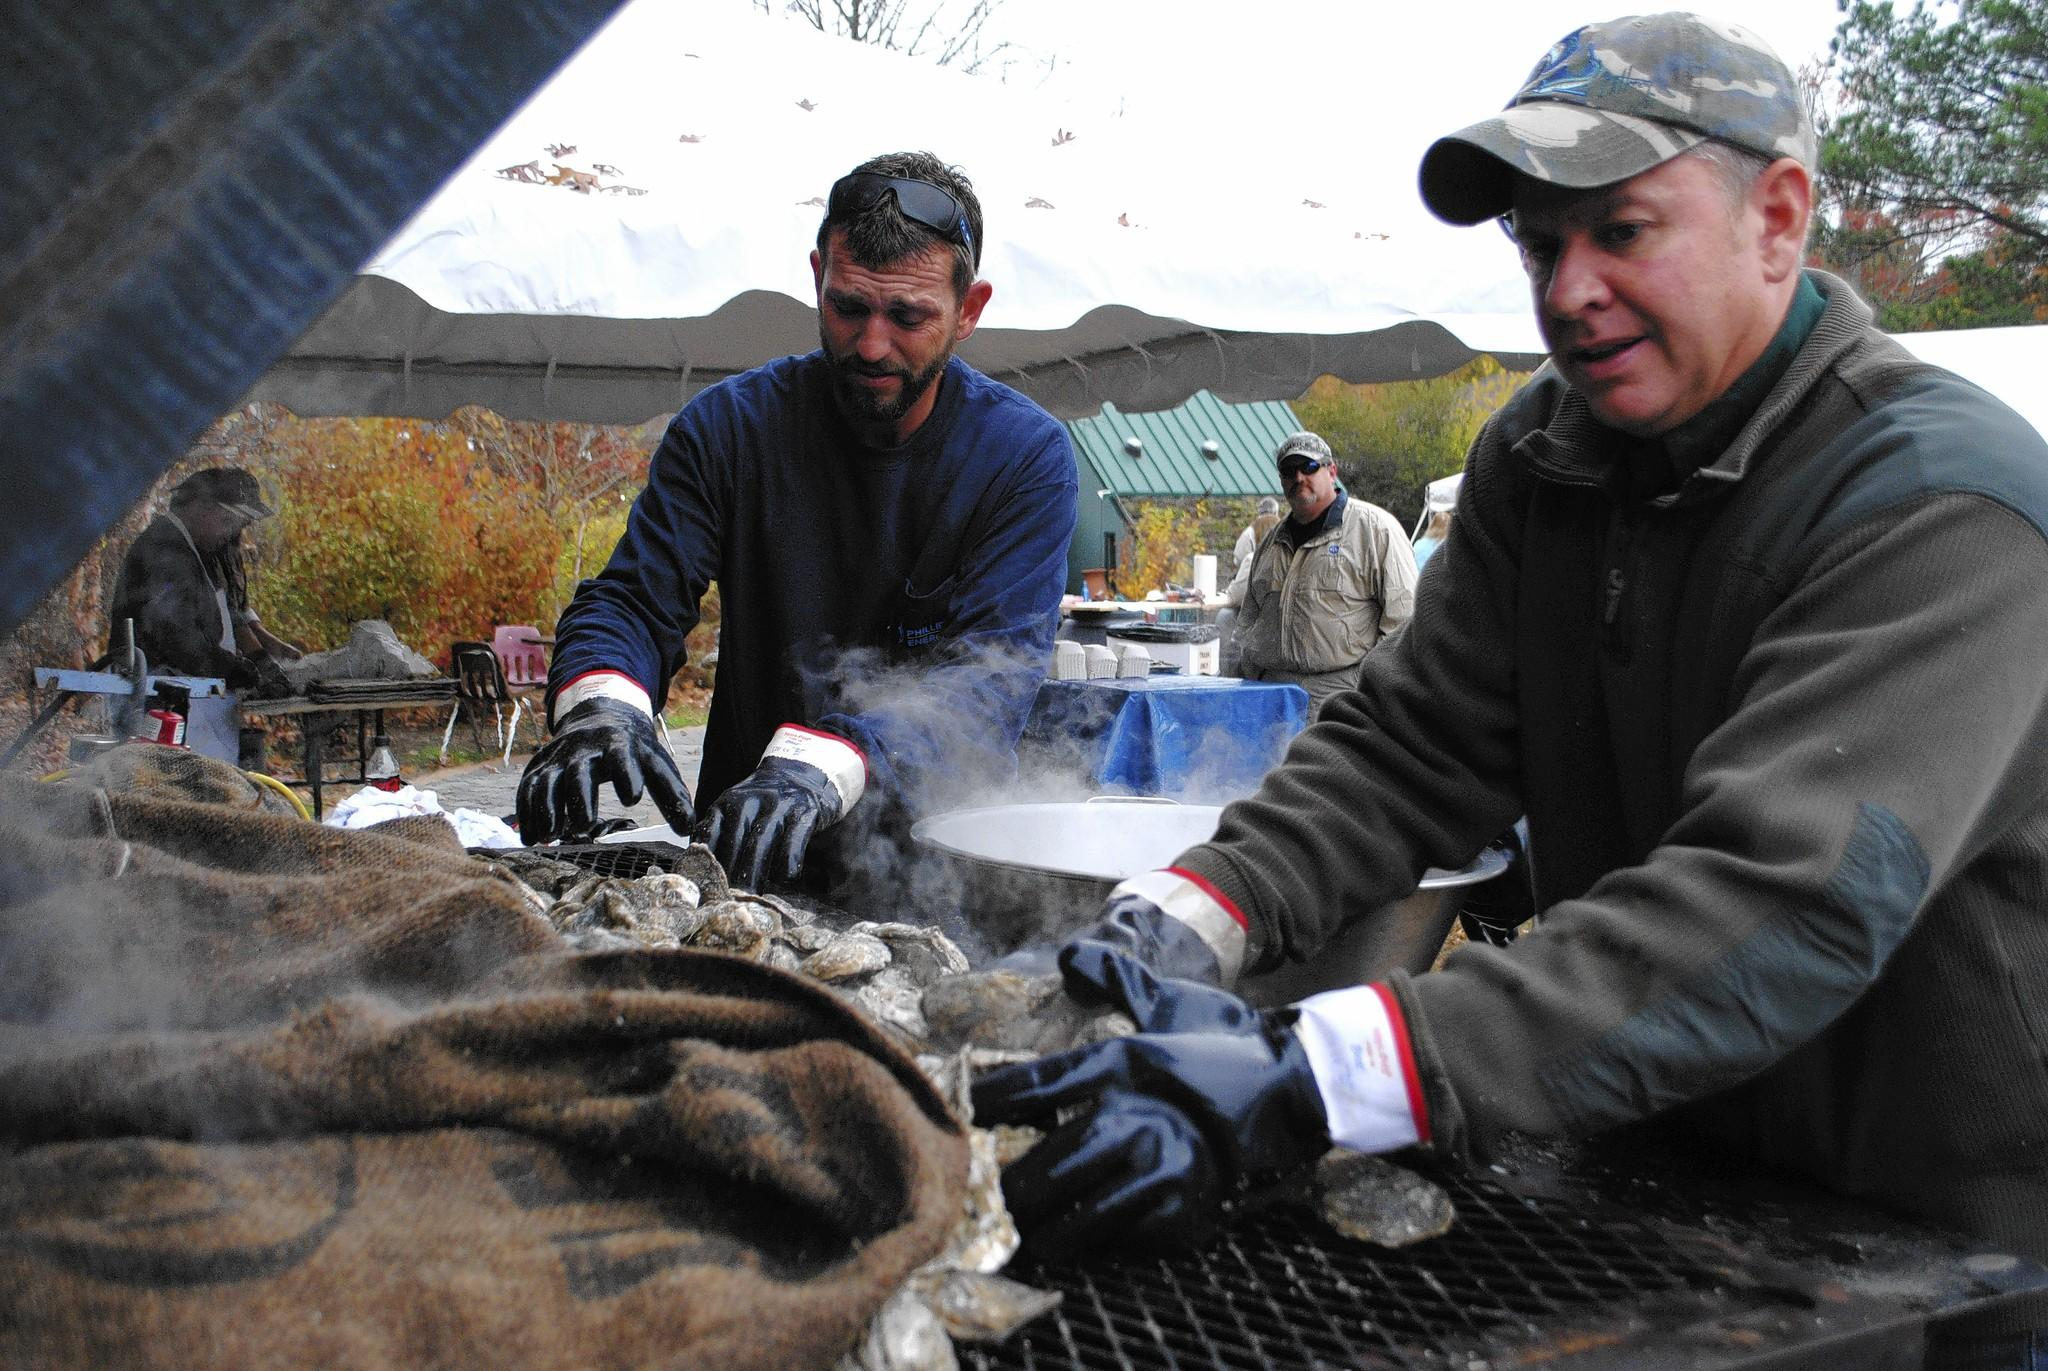 L to R: Chris Green and Herb Graham roasting oysters at the Awww Shucks! Oyster Roast at the Virginia Living Museum, Nov. 16, 2013.